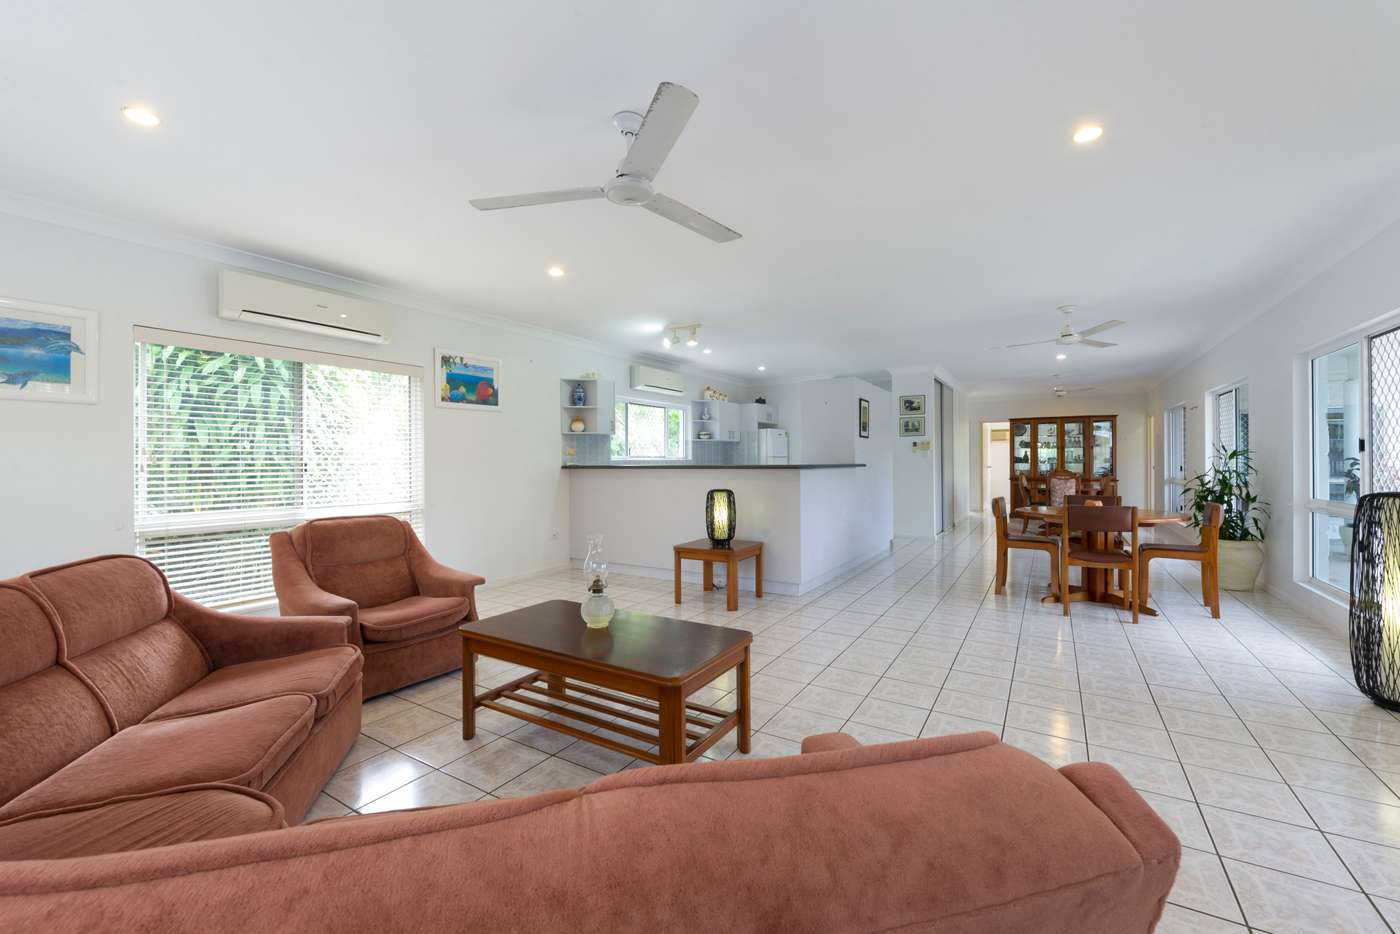 Main view of Homely house listing, 15 Albatross Close, Cooya Beach QLD 4873